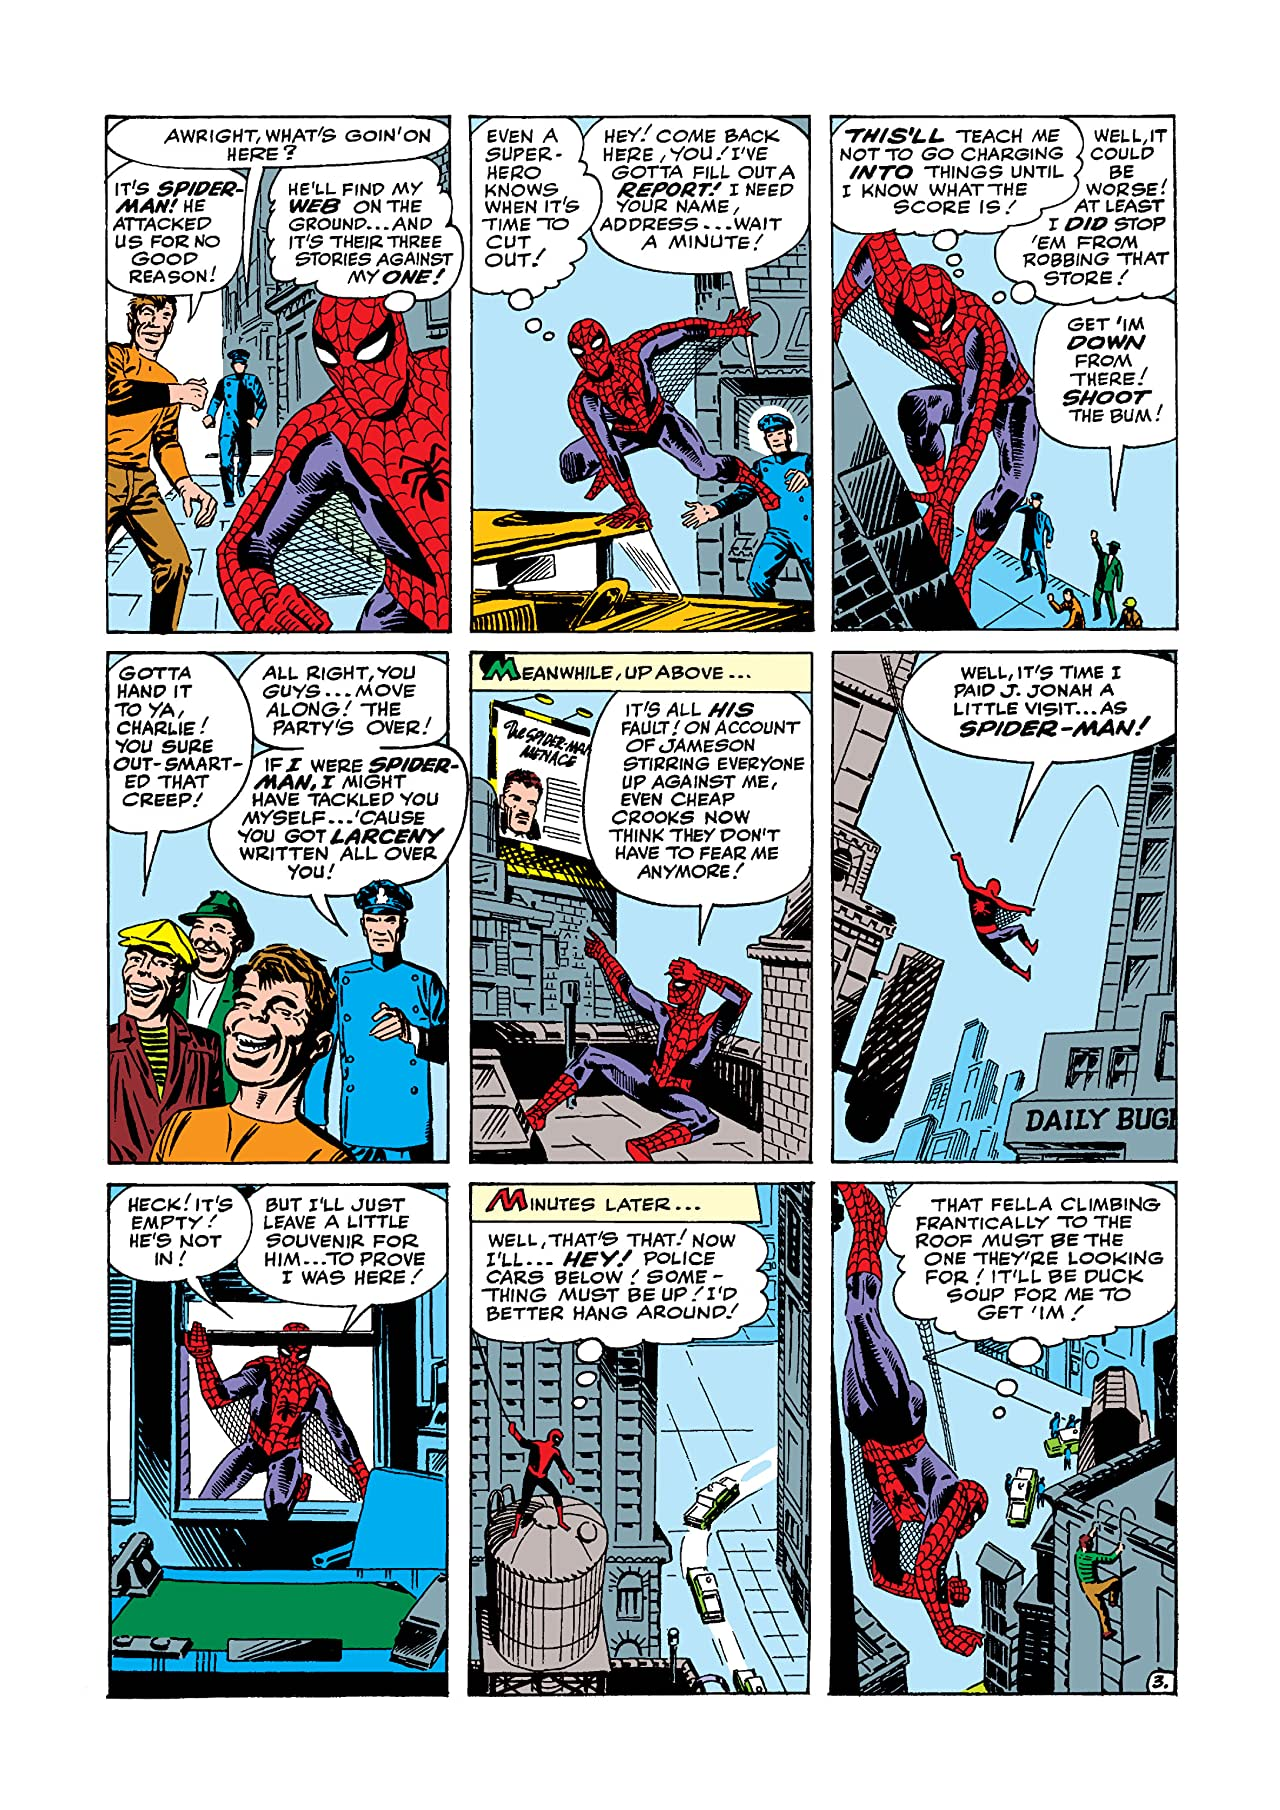 Spider-Man: Saga of the Sandman